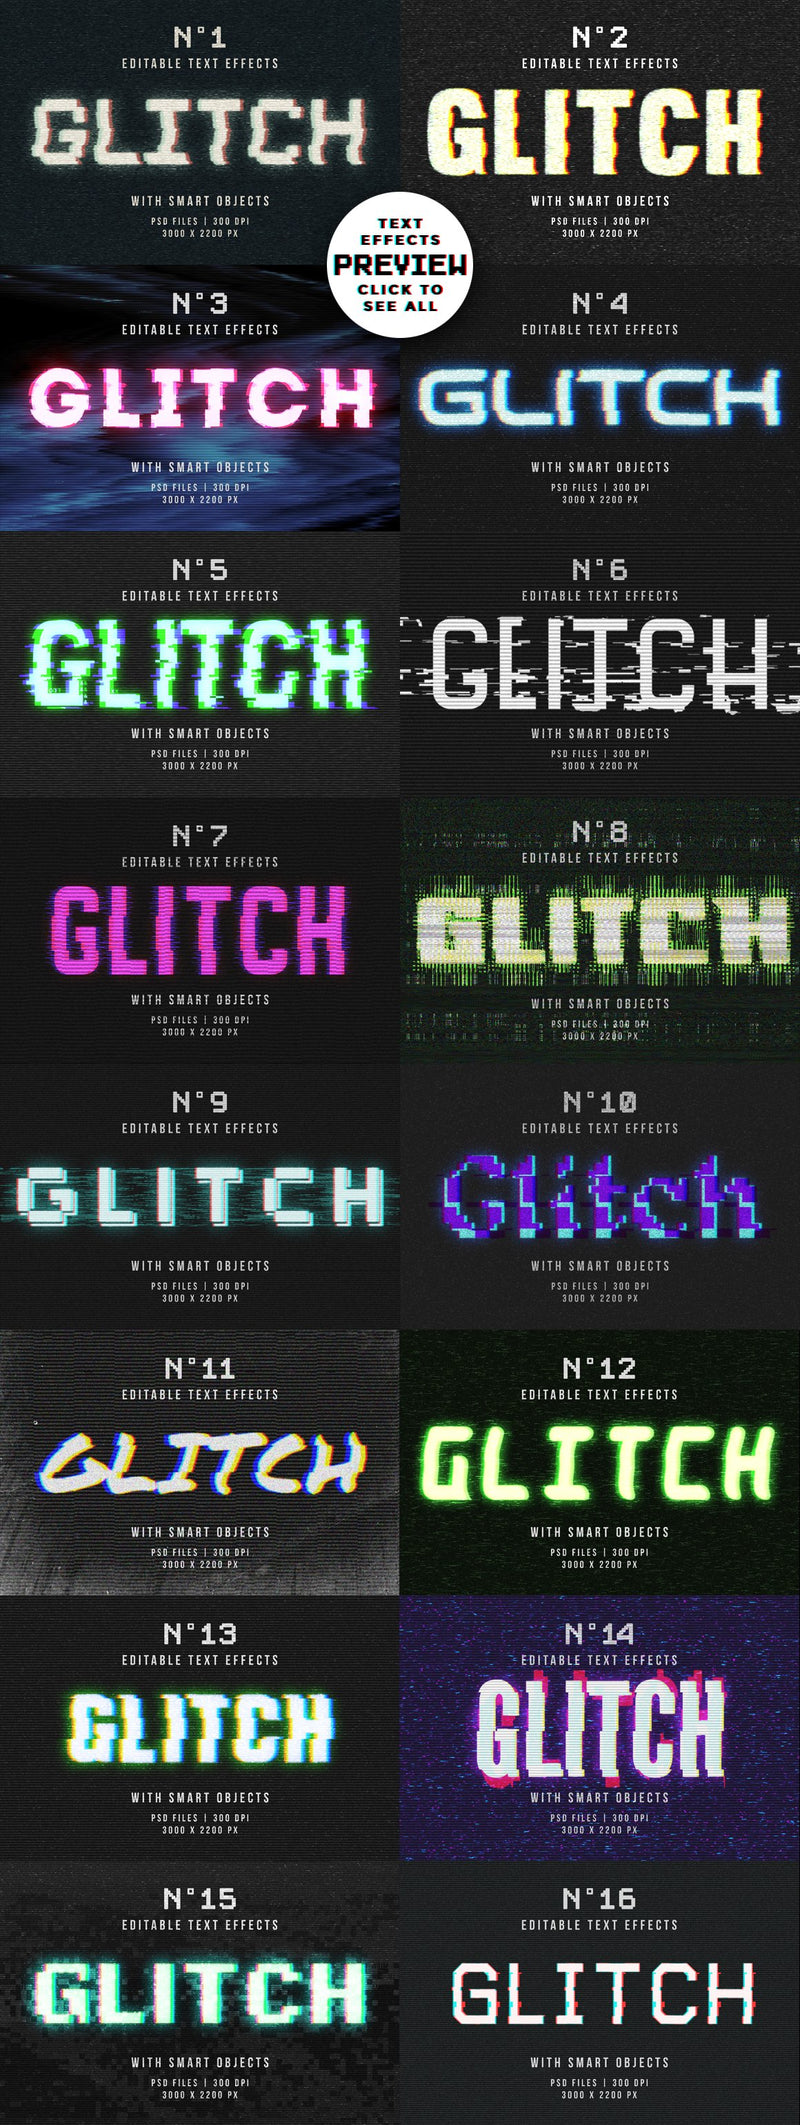 Glitch Text Effects for Photoshop